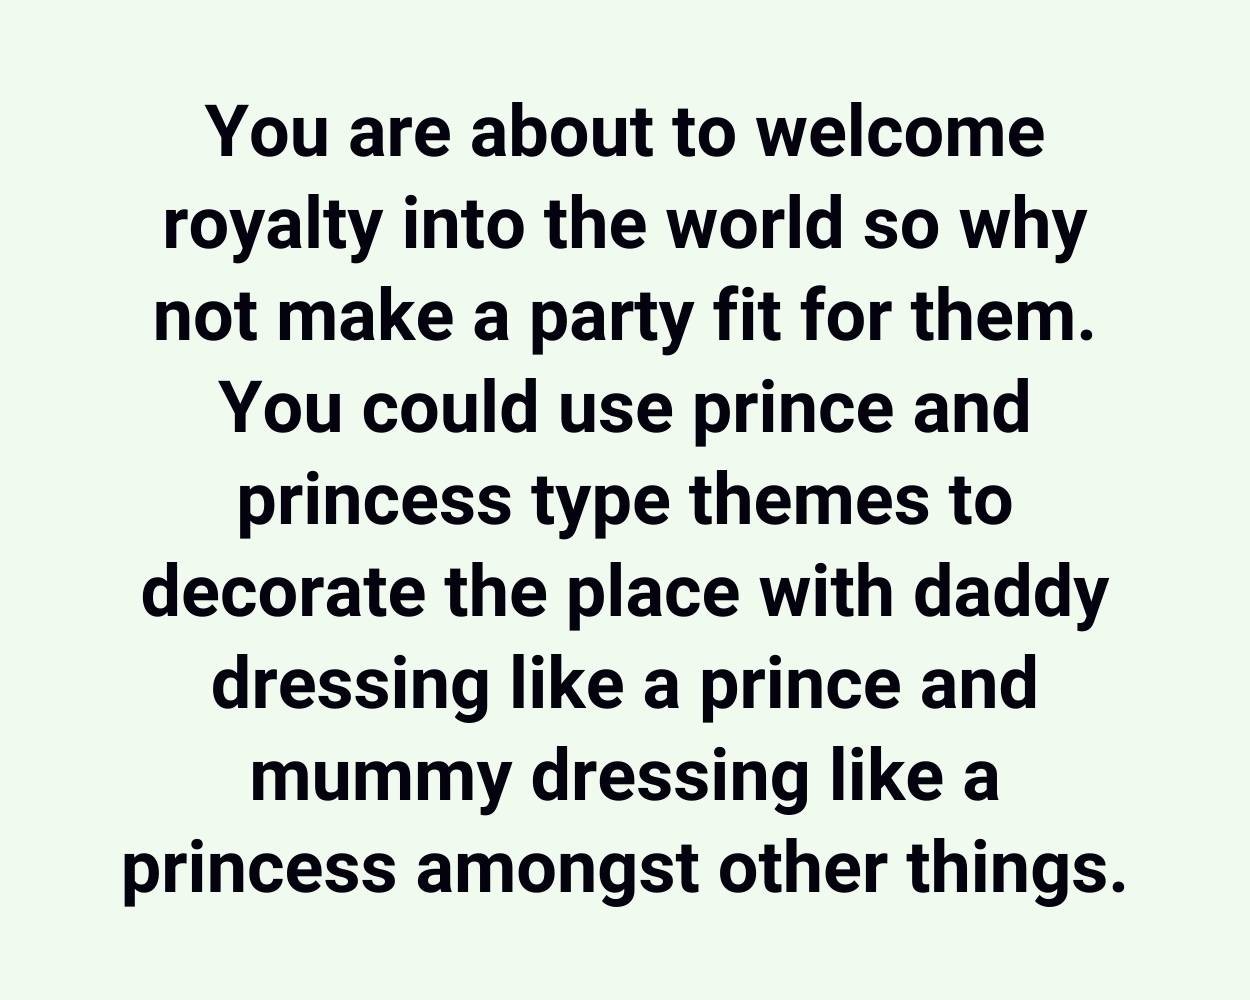 You are about to welcome royalty into the world so why not make a party fit for them. You could use prince and princess type themes to decorate the place with daddy dressing like a prince and mummy dressing like a princess amongst other things.